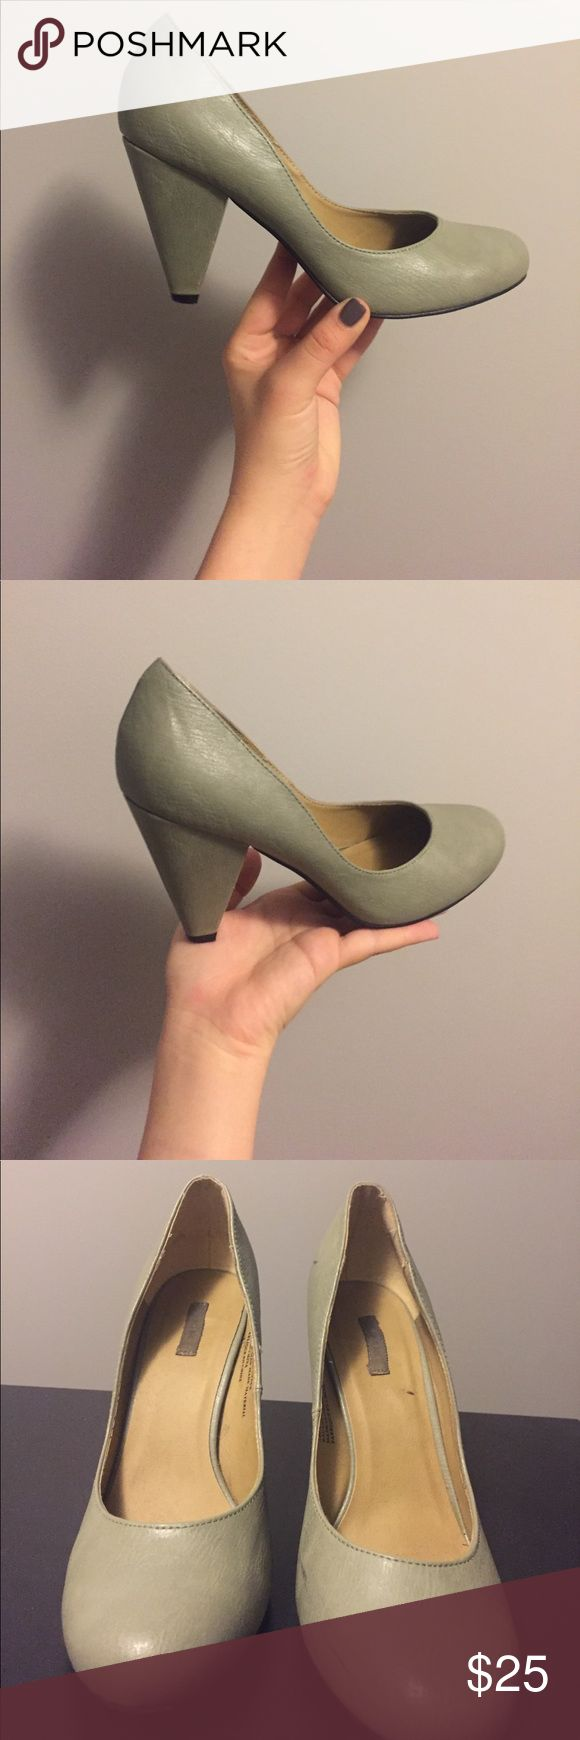 Leather mint pumps Leather mint pumps by kimchi blue, small black marks on outside right shoe Shoes Heels